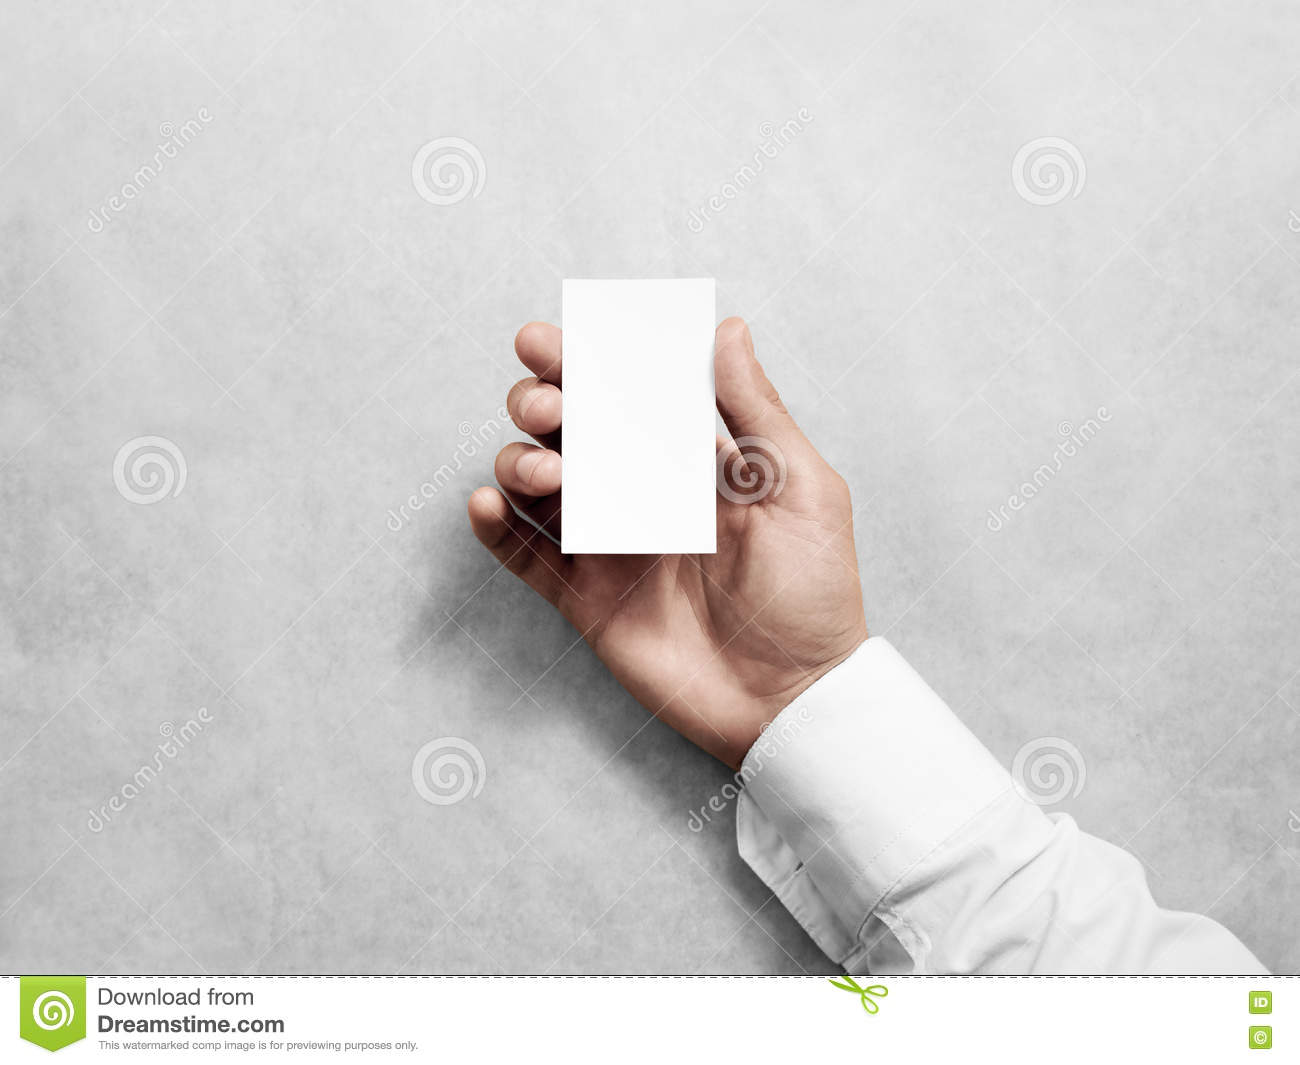 download hand hold blank vertical white business card design mockup stock image image of